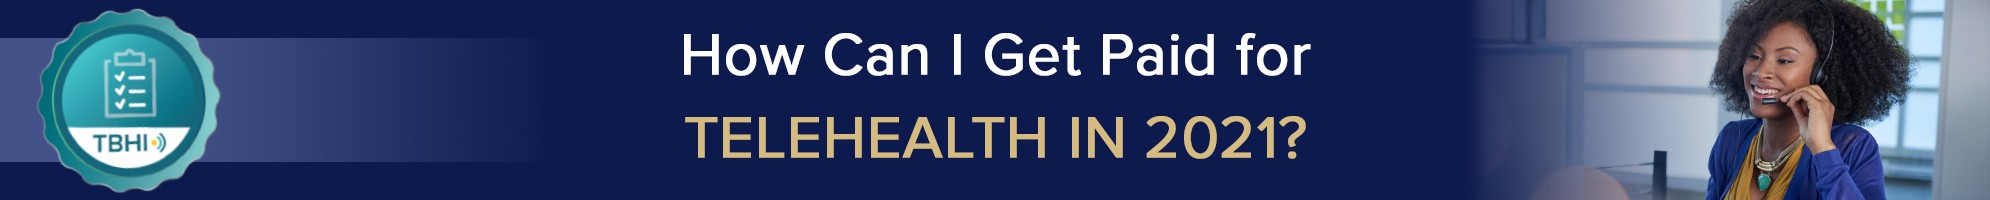 get paid for telehealth